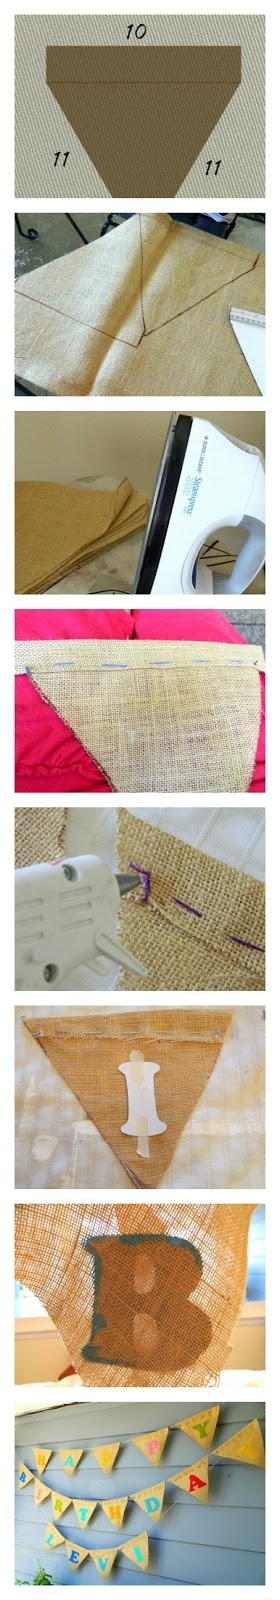 DIY Burlap Pendant Banner @Megan Tyson you should do this!